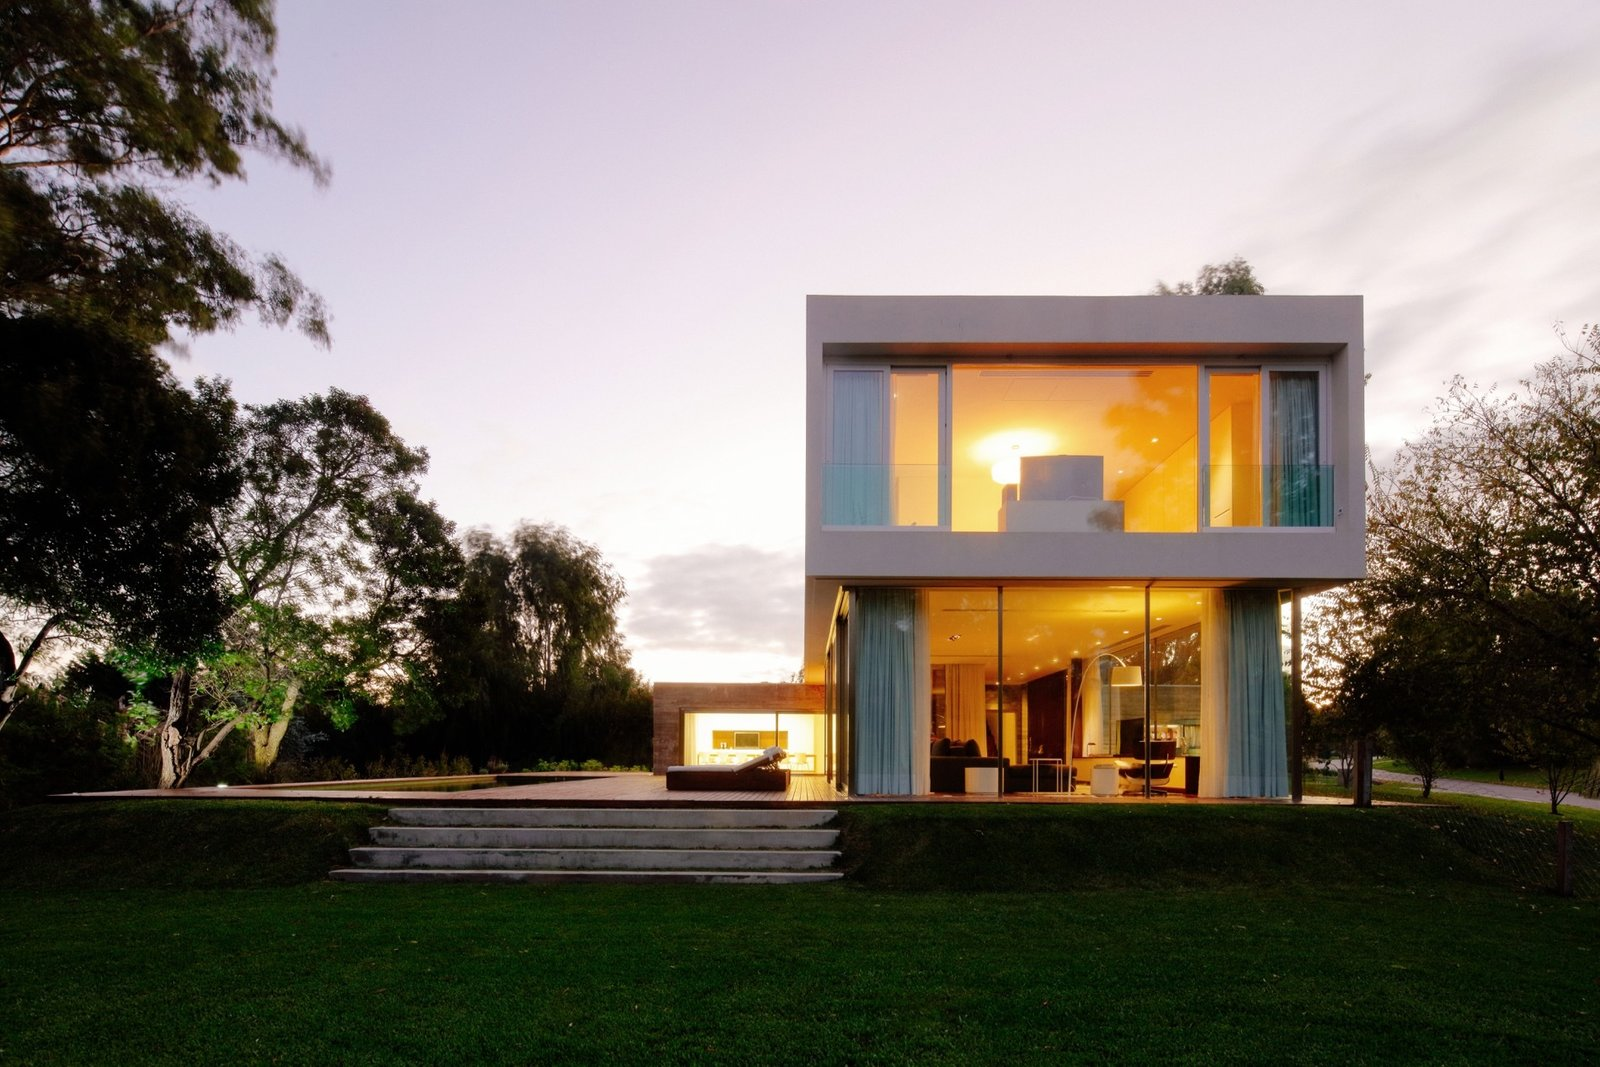 Side view of the House at Los Cisnes at dawn. Concrete, Glass, Wood. Tagged: Outdoor, Large Patio, Porch, Deck, Grass, Back Yard, Trees, and Wood Patio, Porch, Deck.  House at Los Cisnes by Esteban Fallone